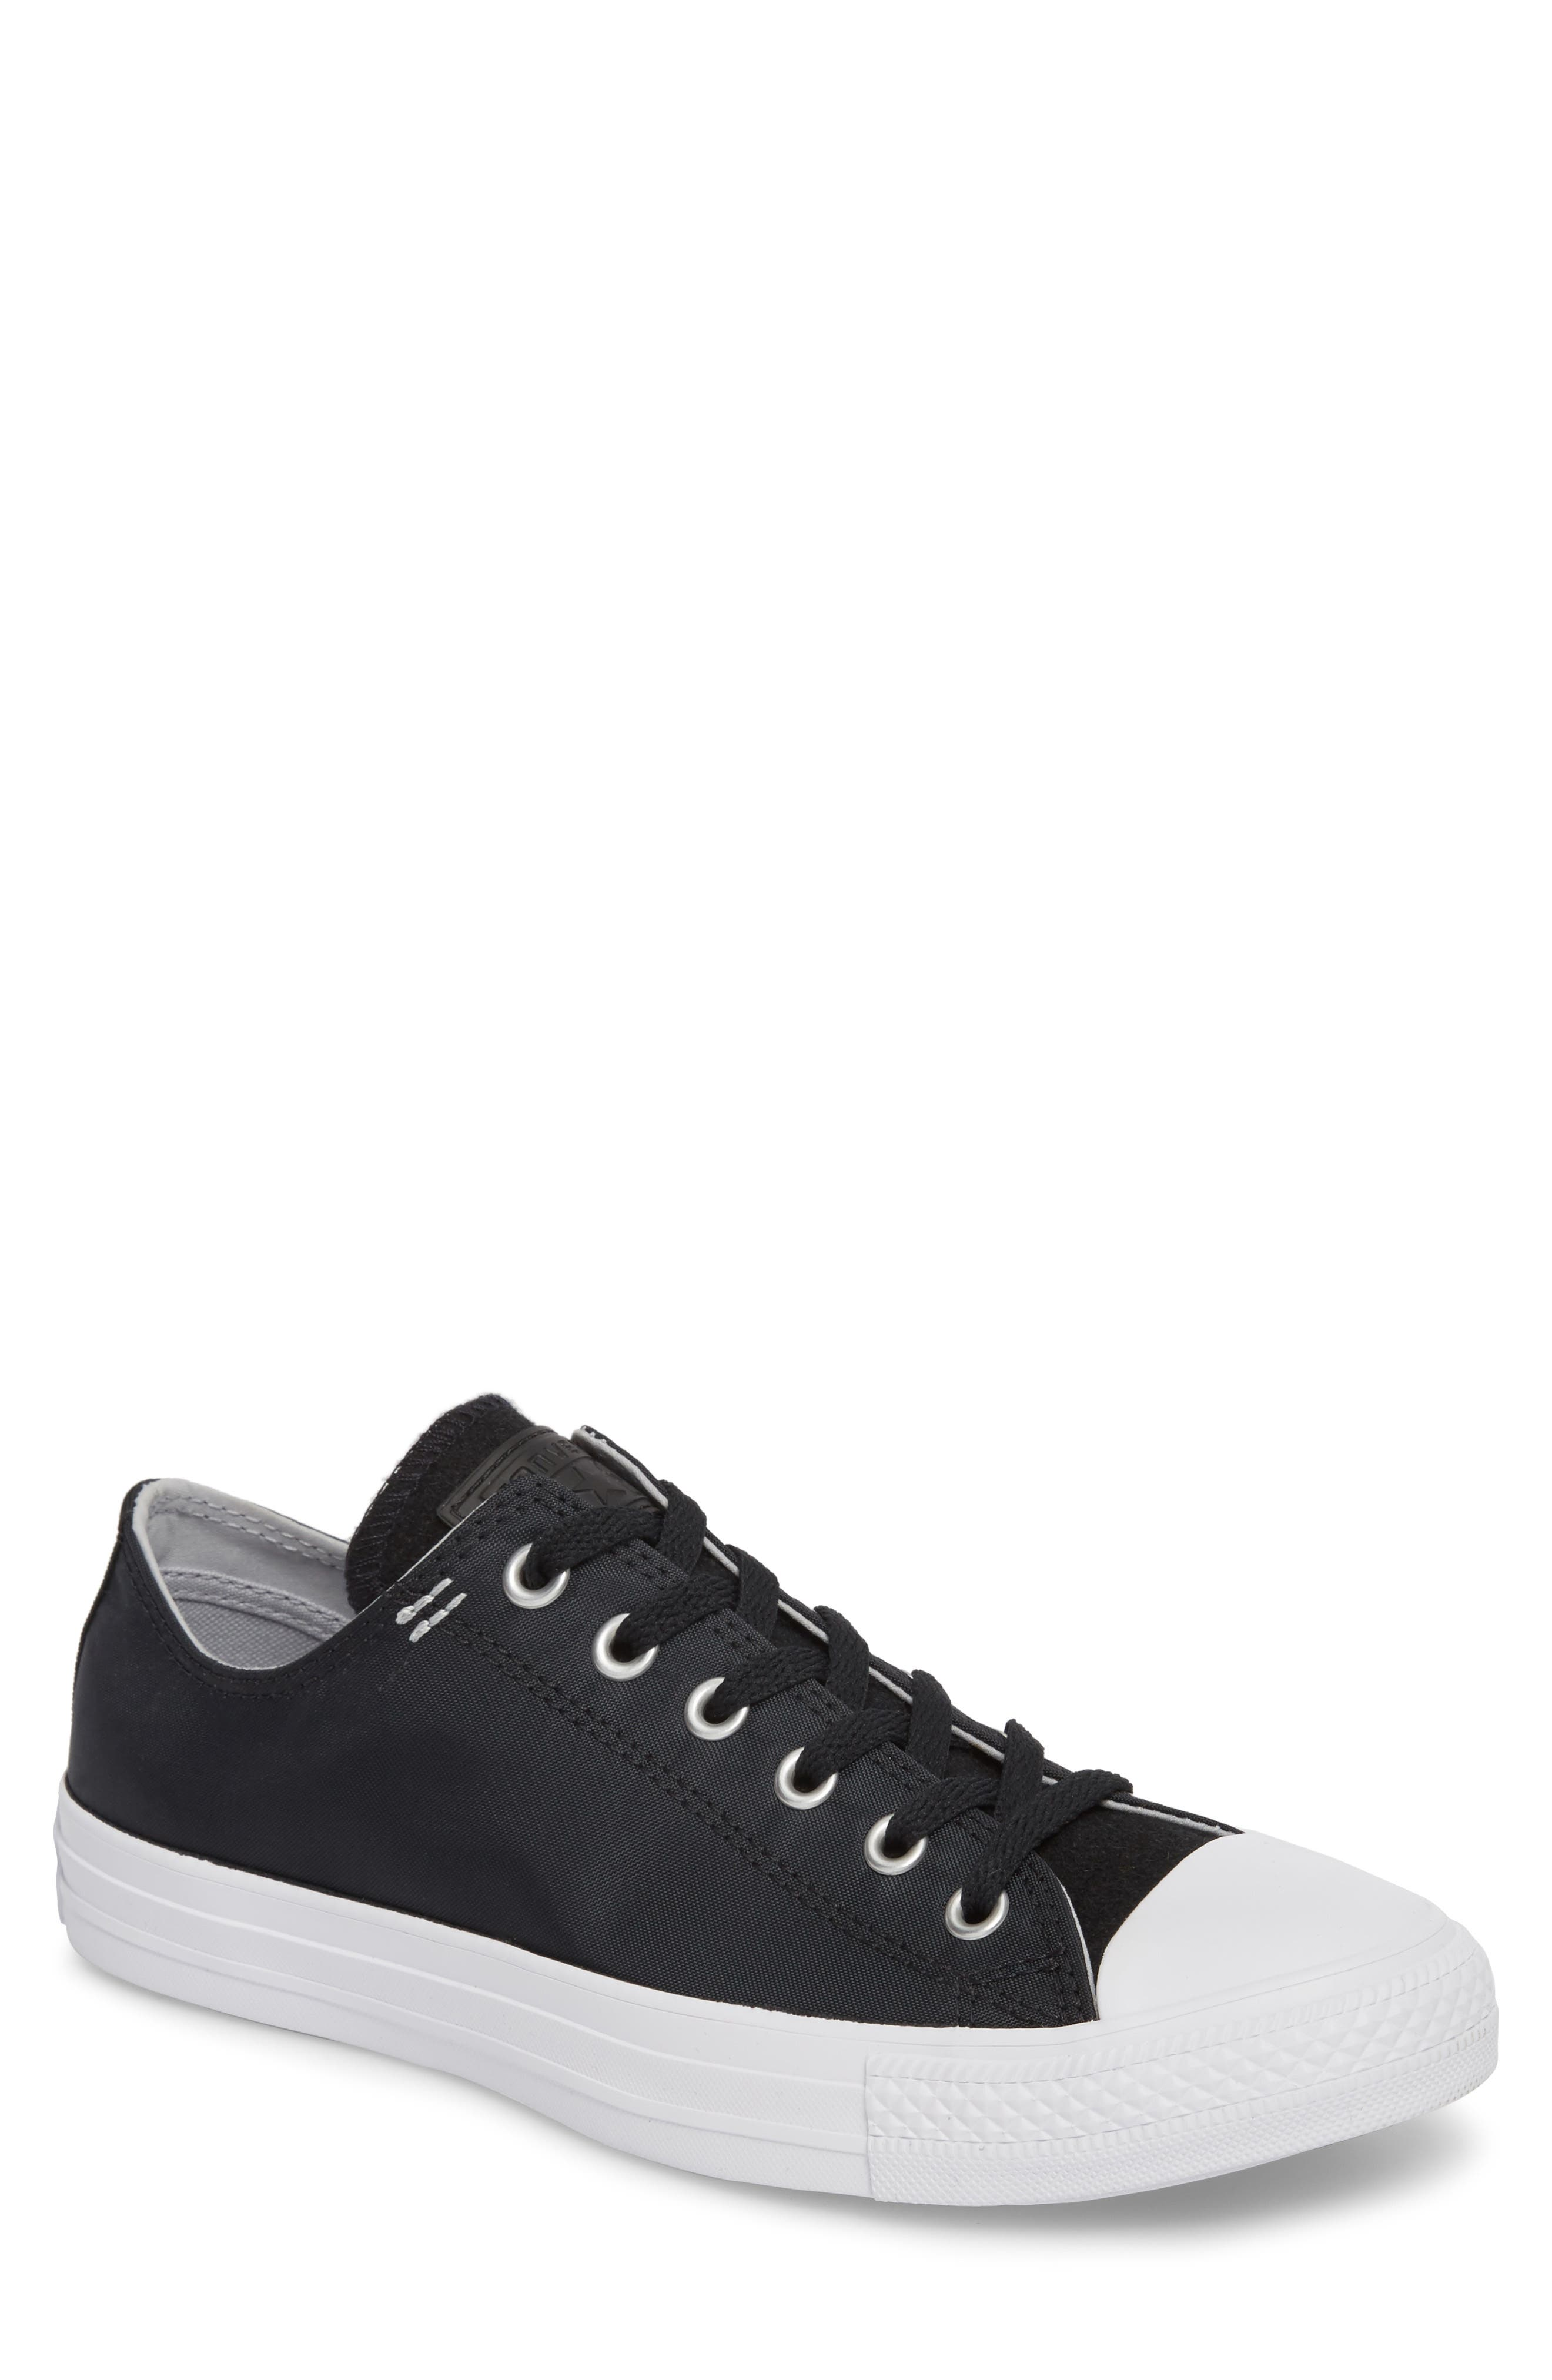 All Star<sup>®</sup> OX Low Top Sneaker,                         Main,                         color, 001